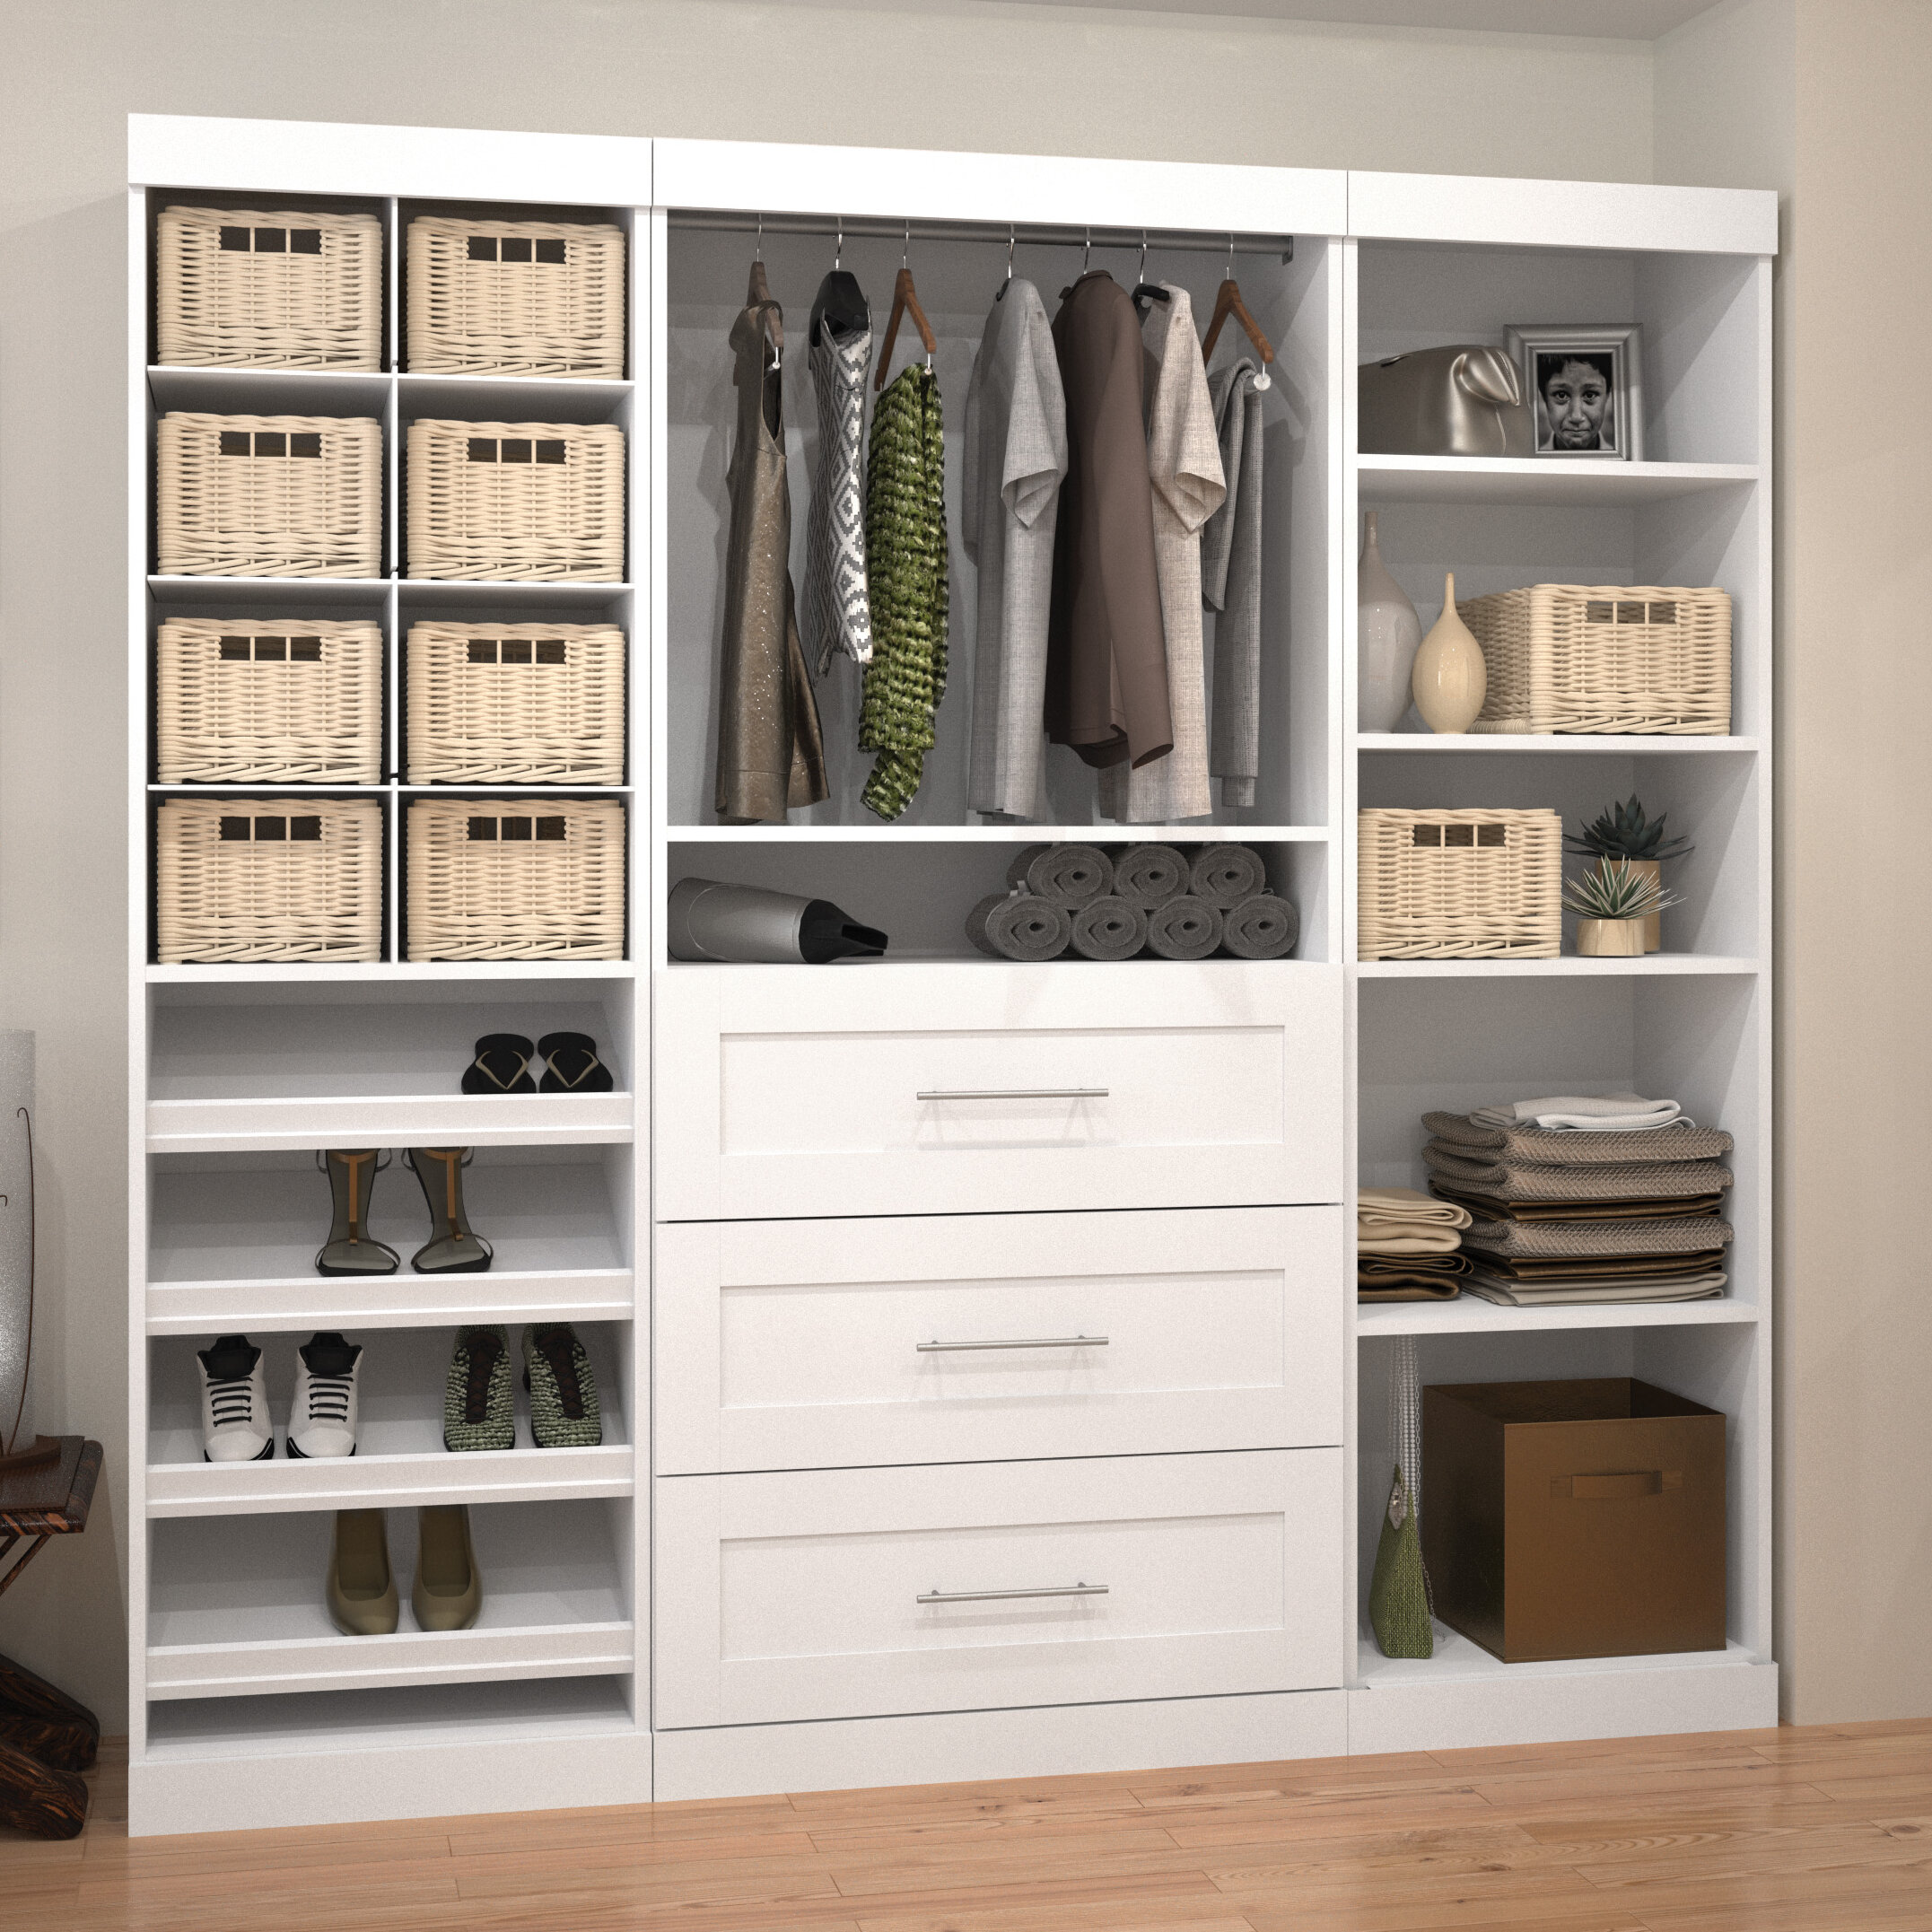 with white closet elegant in unit storage of adorable wooden organizers drawers shelving